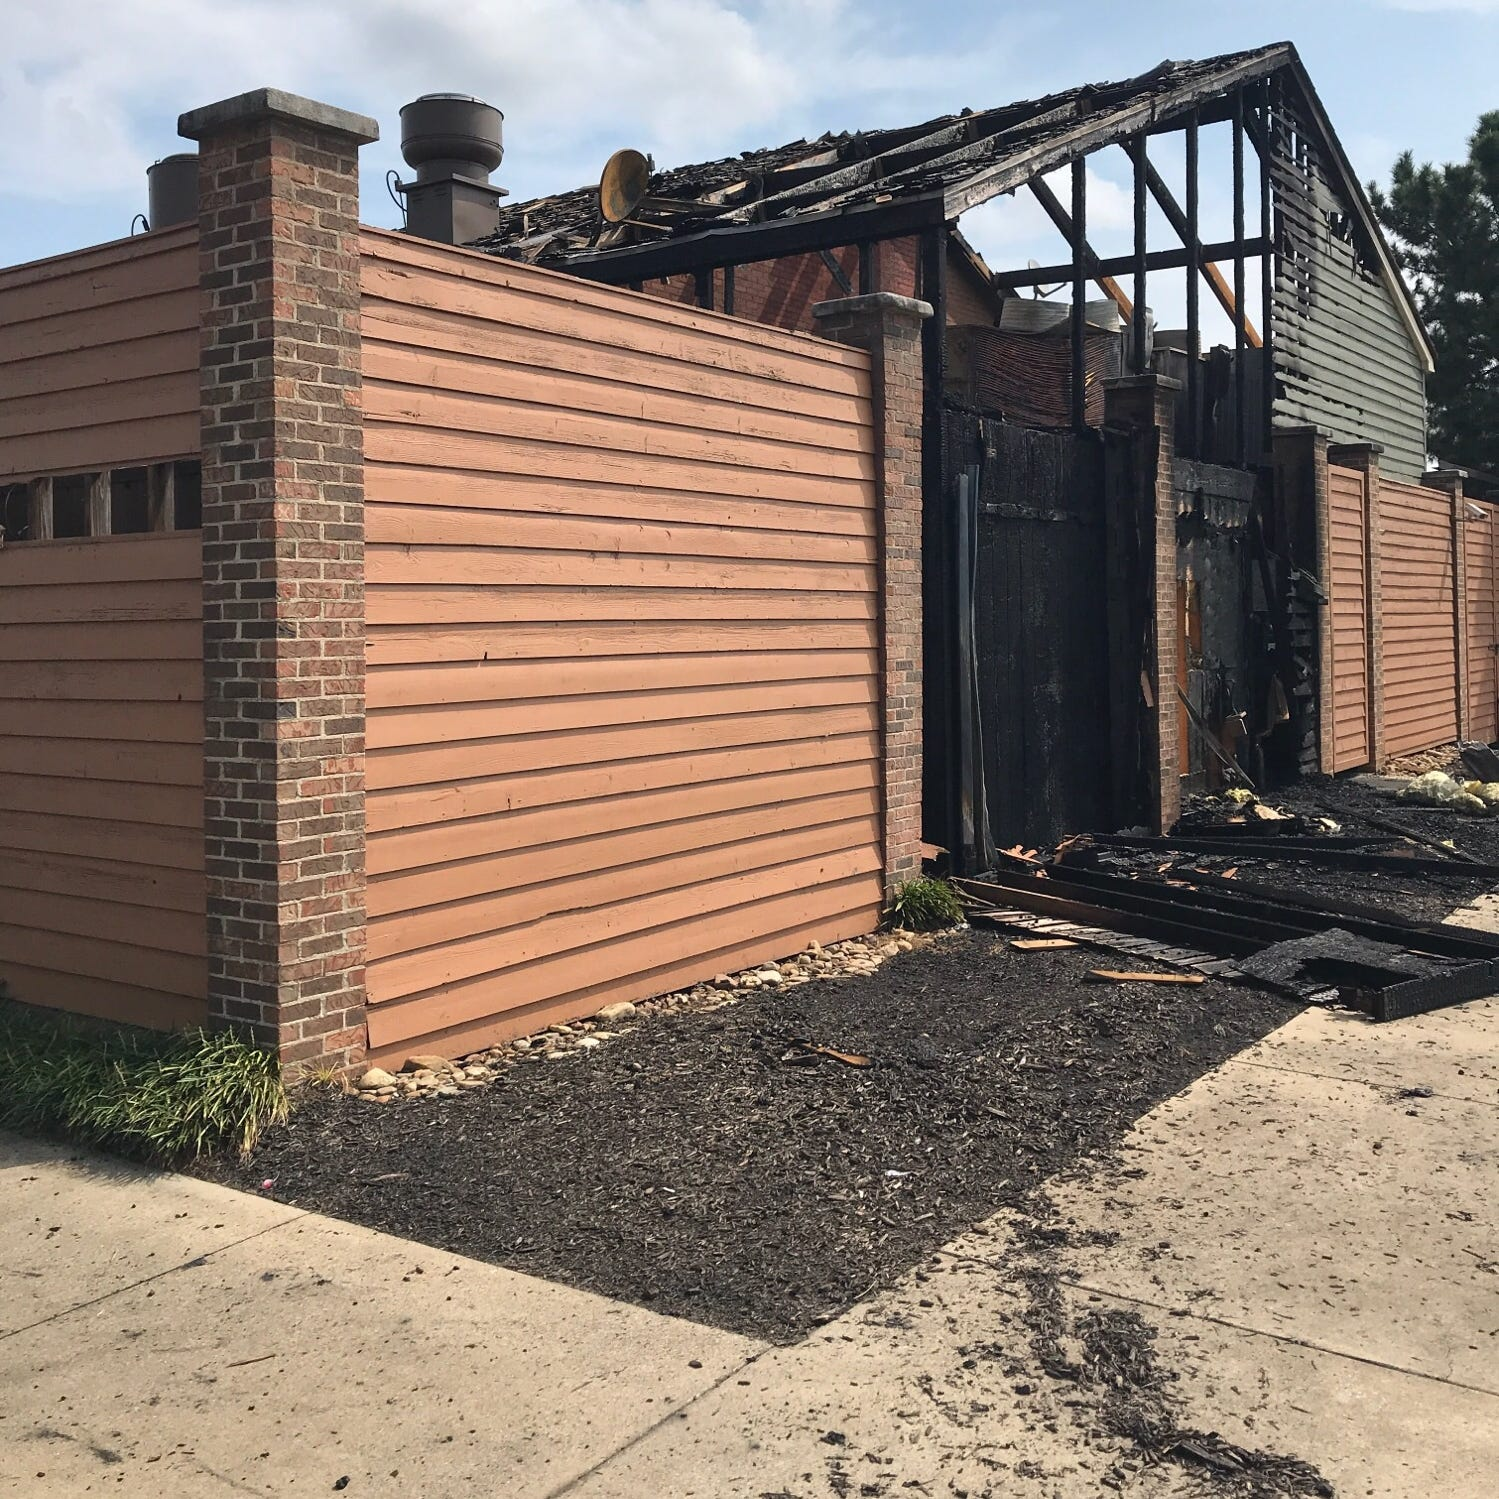 Rafferty's fire in Greenville: 'Smoking materials' associated with cigarette caused blaze